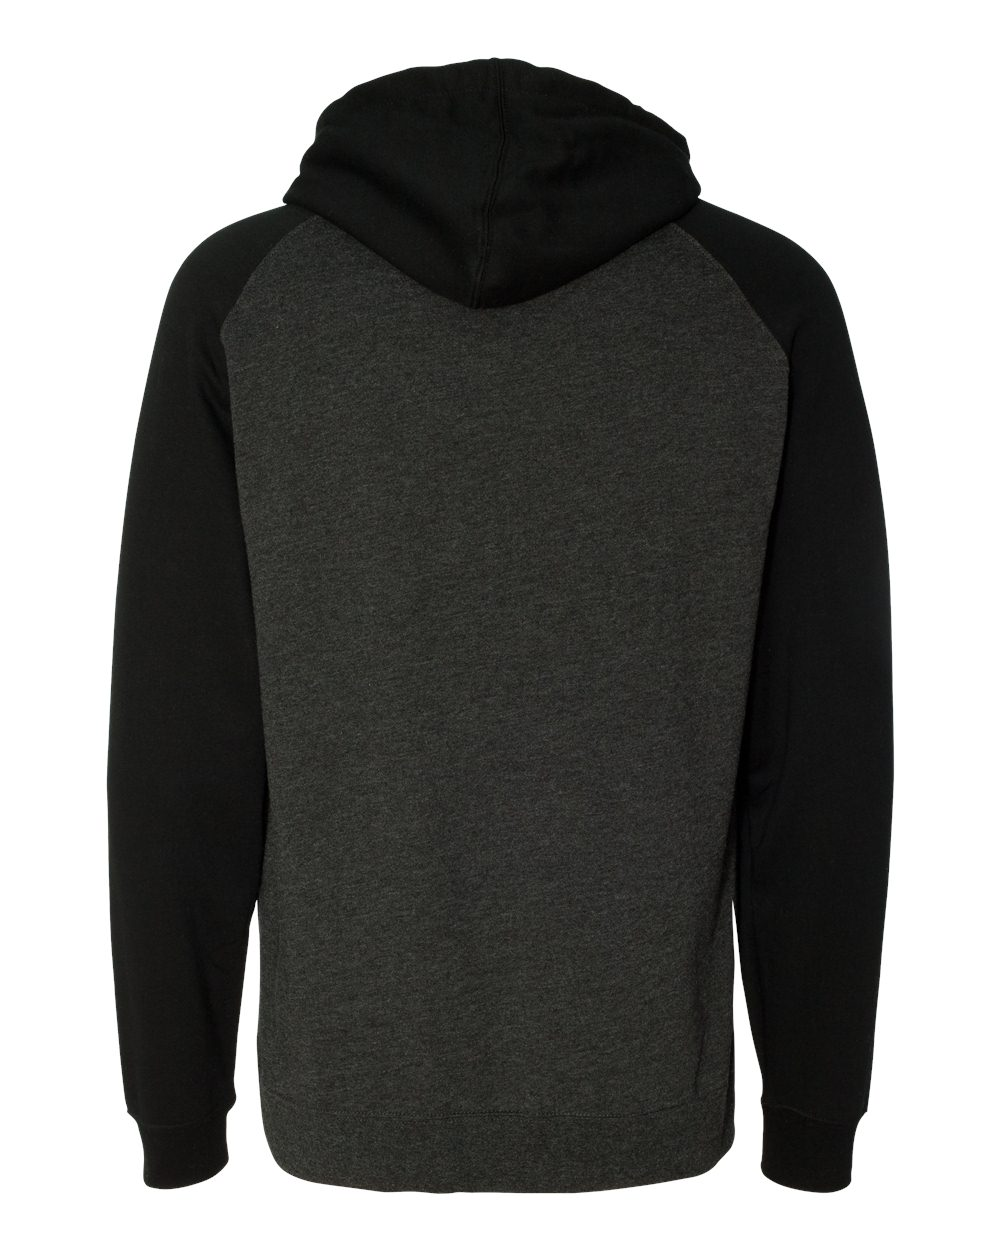 Independent-Trading-Co-Mens-Raglan-Hooded-Pullover-Sweatshirt-IND40RP-up-to-3XL miniature 10